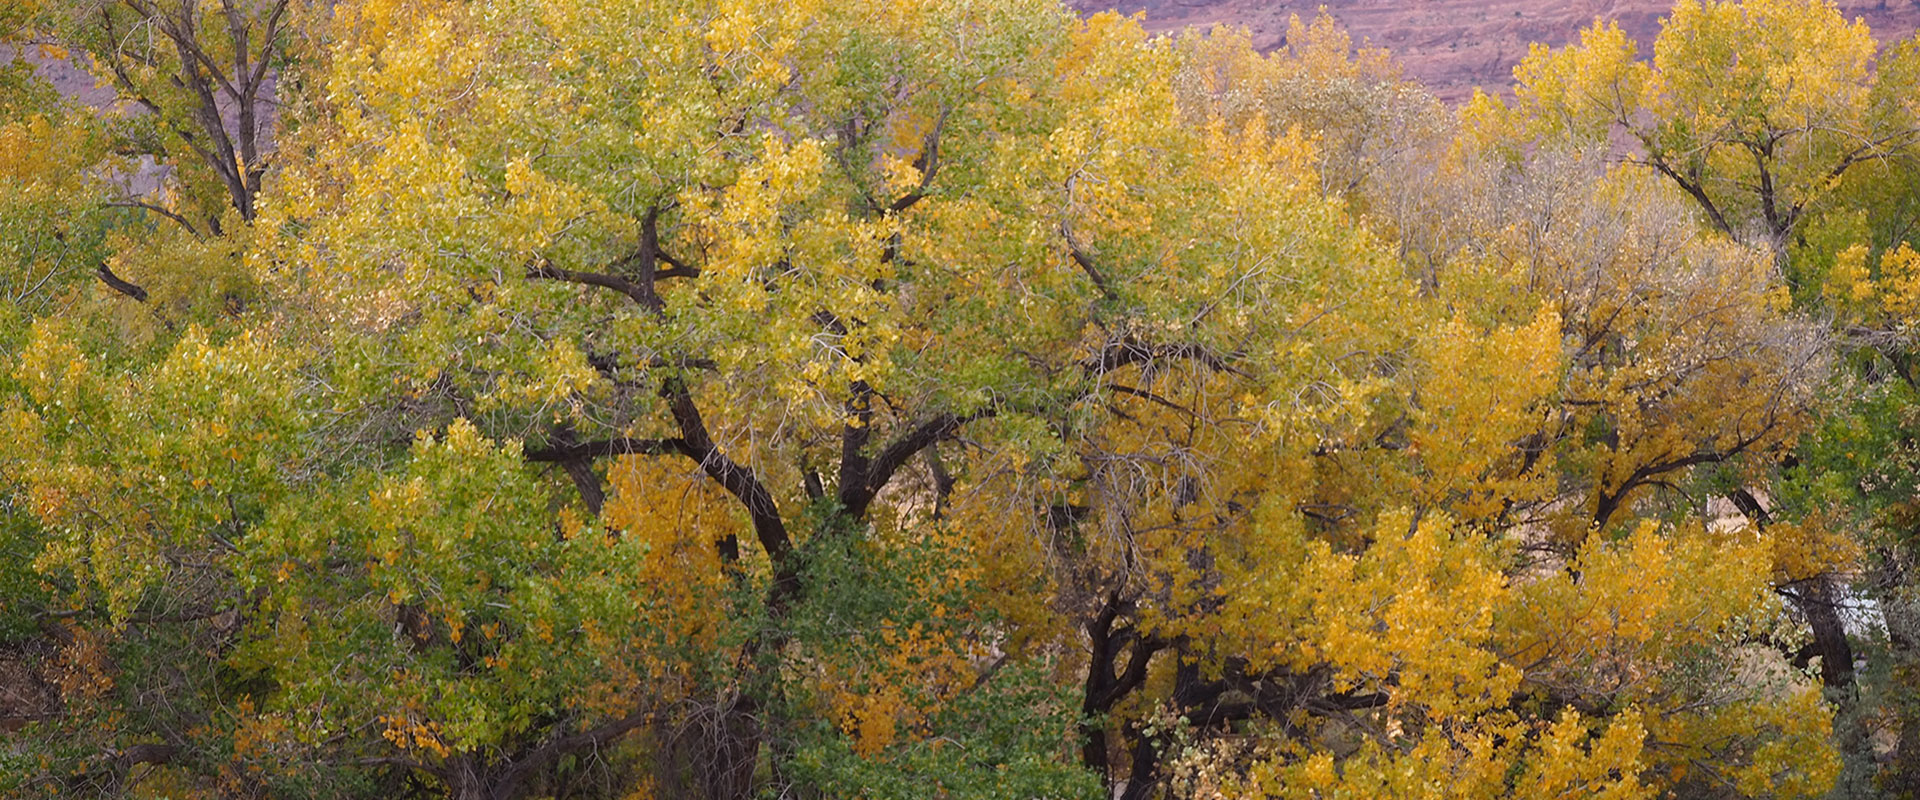 The public park space at Moab Springs Ranch provides guests with a shallow wading pool, hammocks, picnic table, and a cooking area with a barbecue grill, chairs and table.